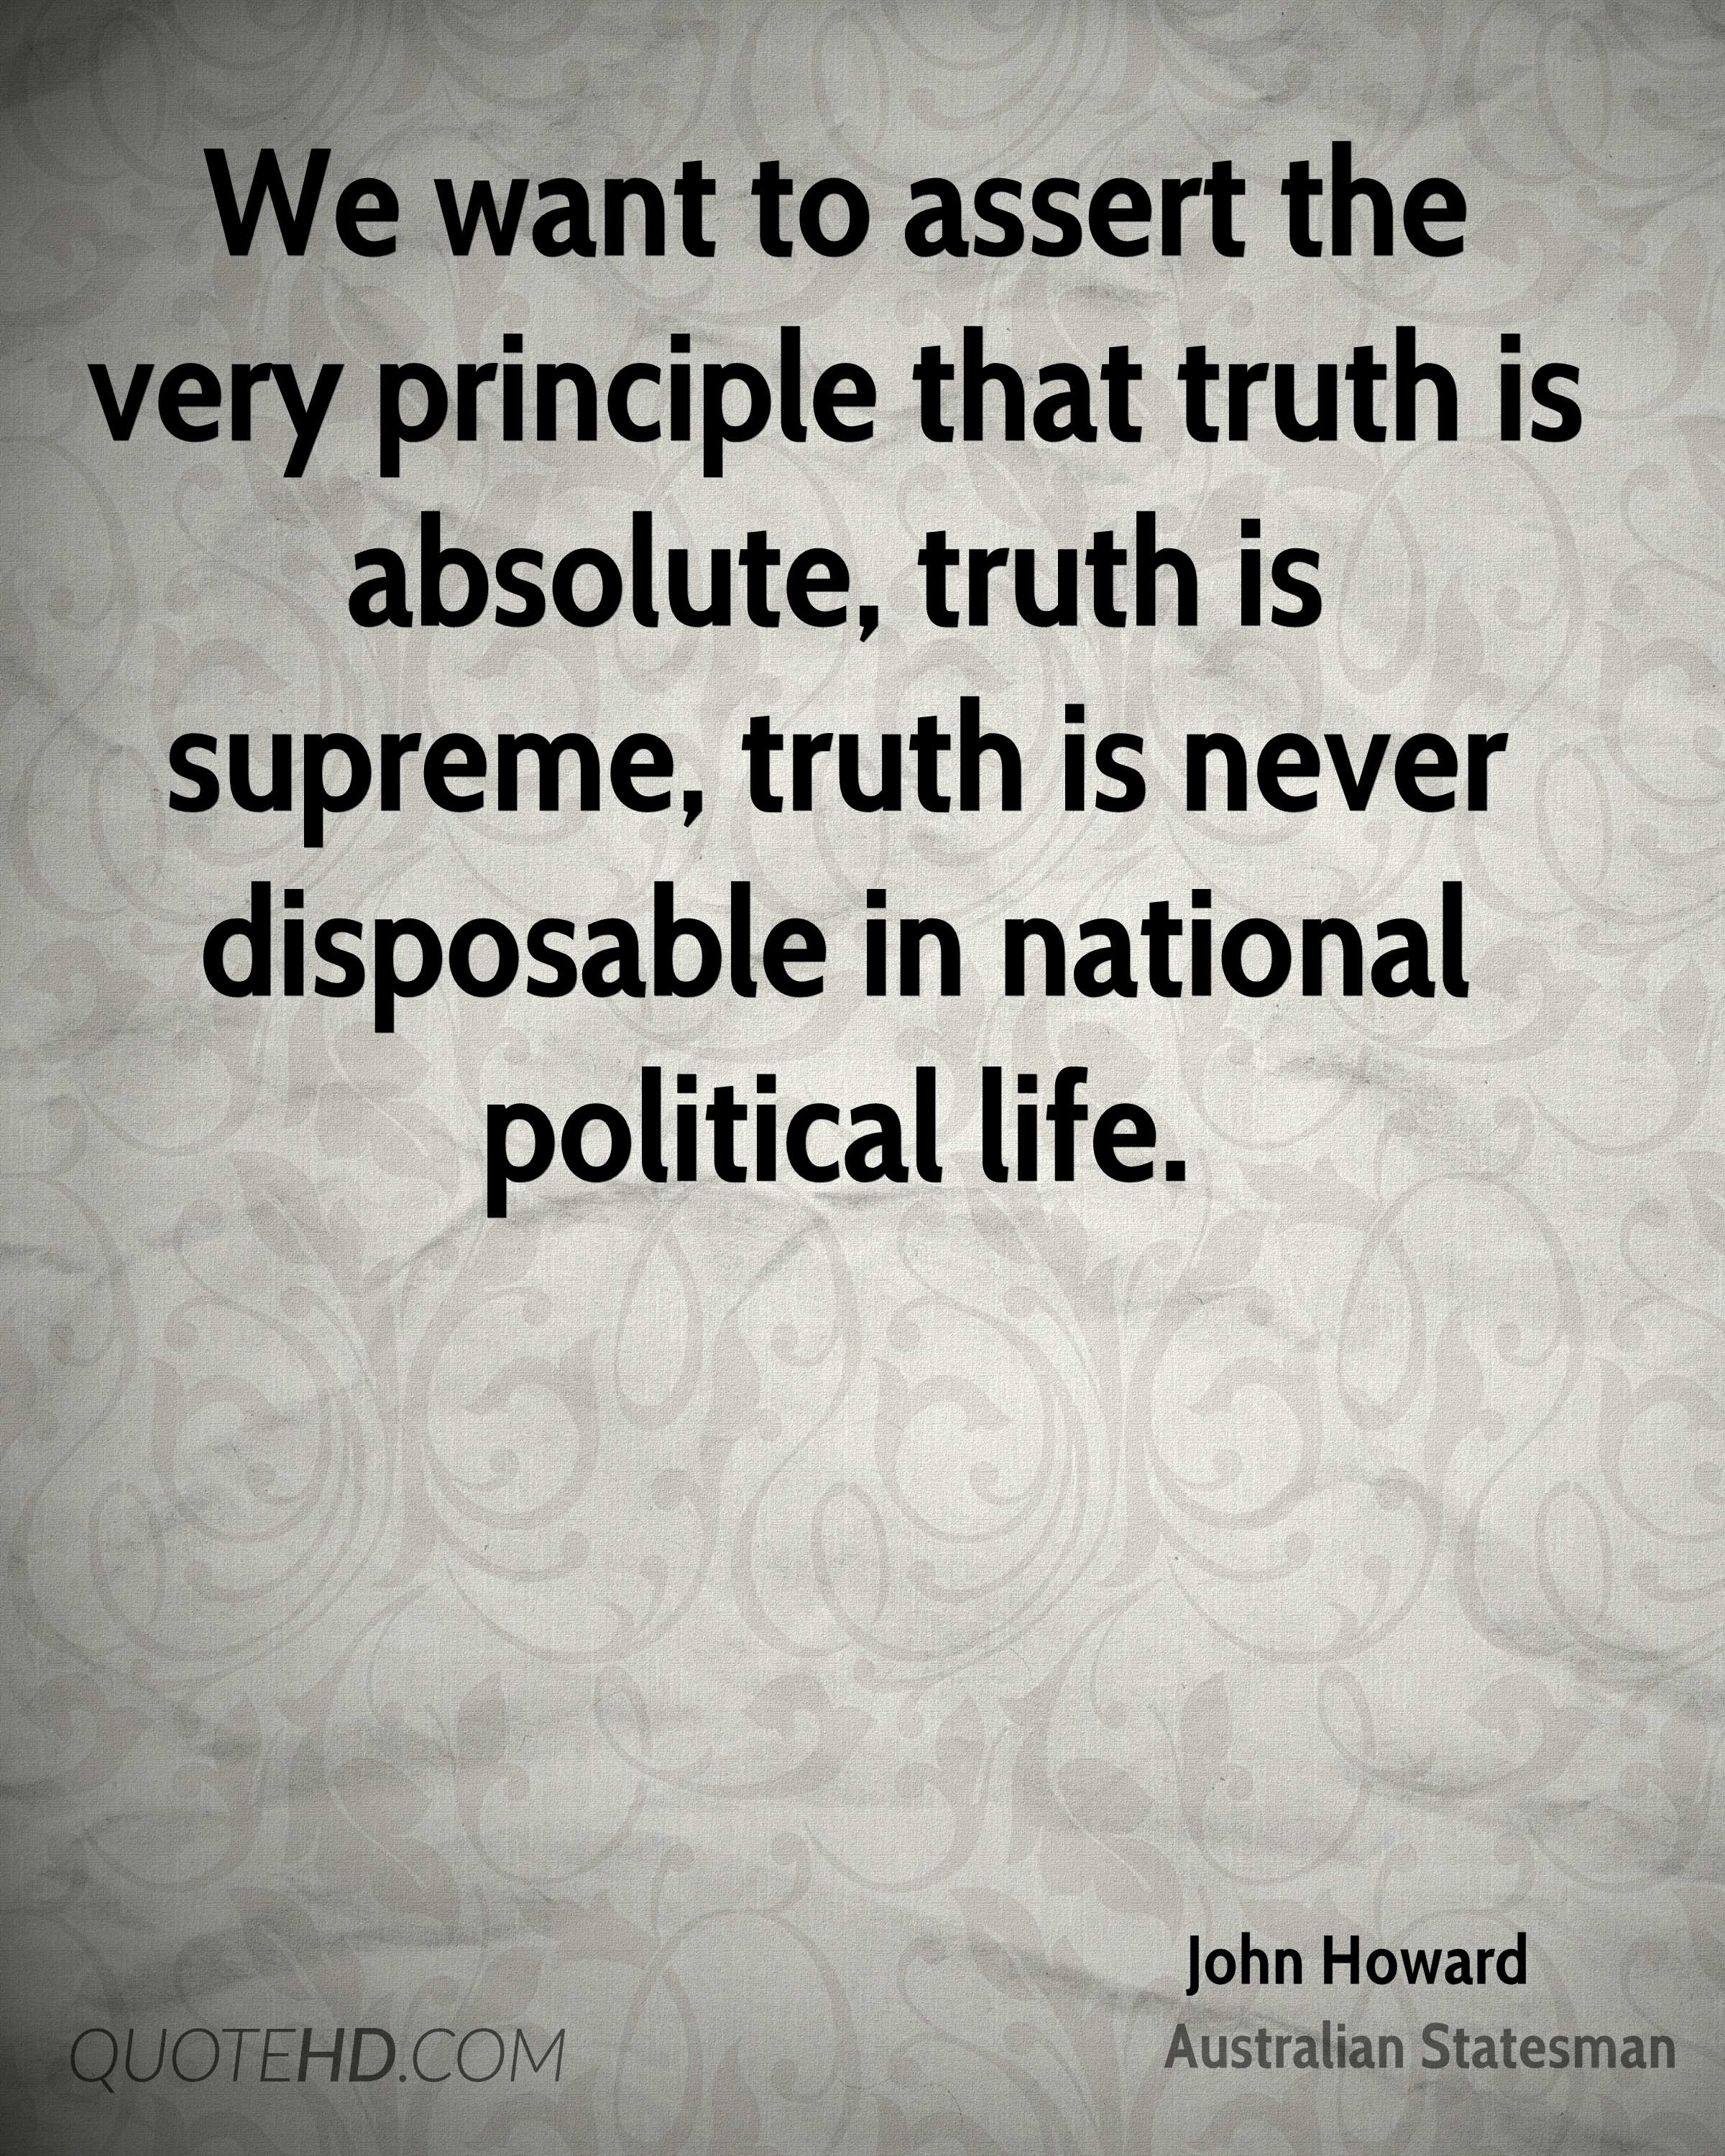 We want to assert the very principle that truth is absolute, truth is supreme, truth is never disposable in national political life.